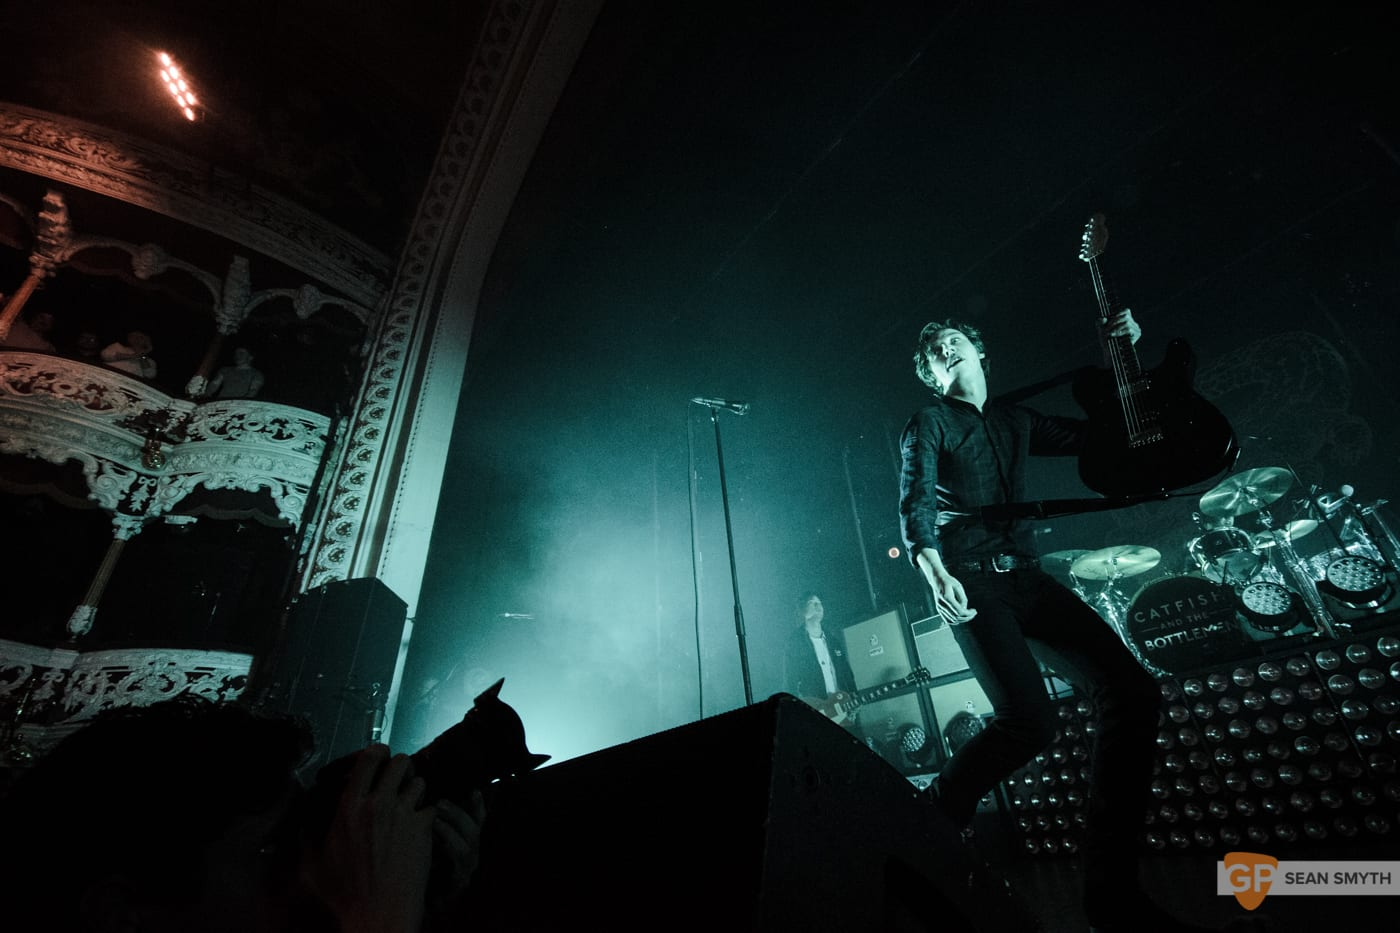 catfish-and-the-bottlemen-at-the-olympia-theatre-by-sean-smyth-20-11-16-13-of-27